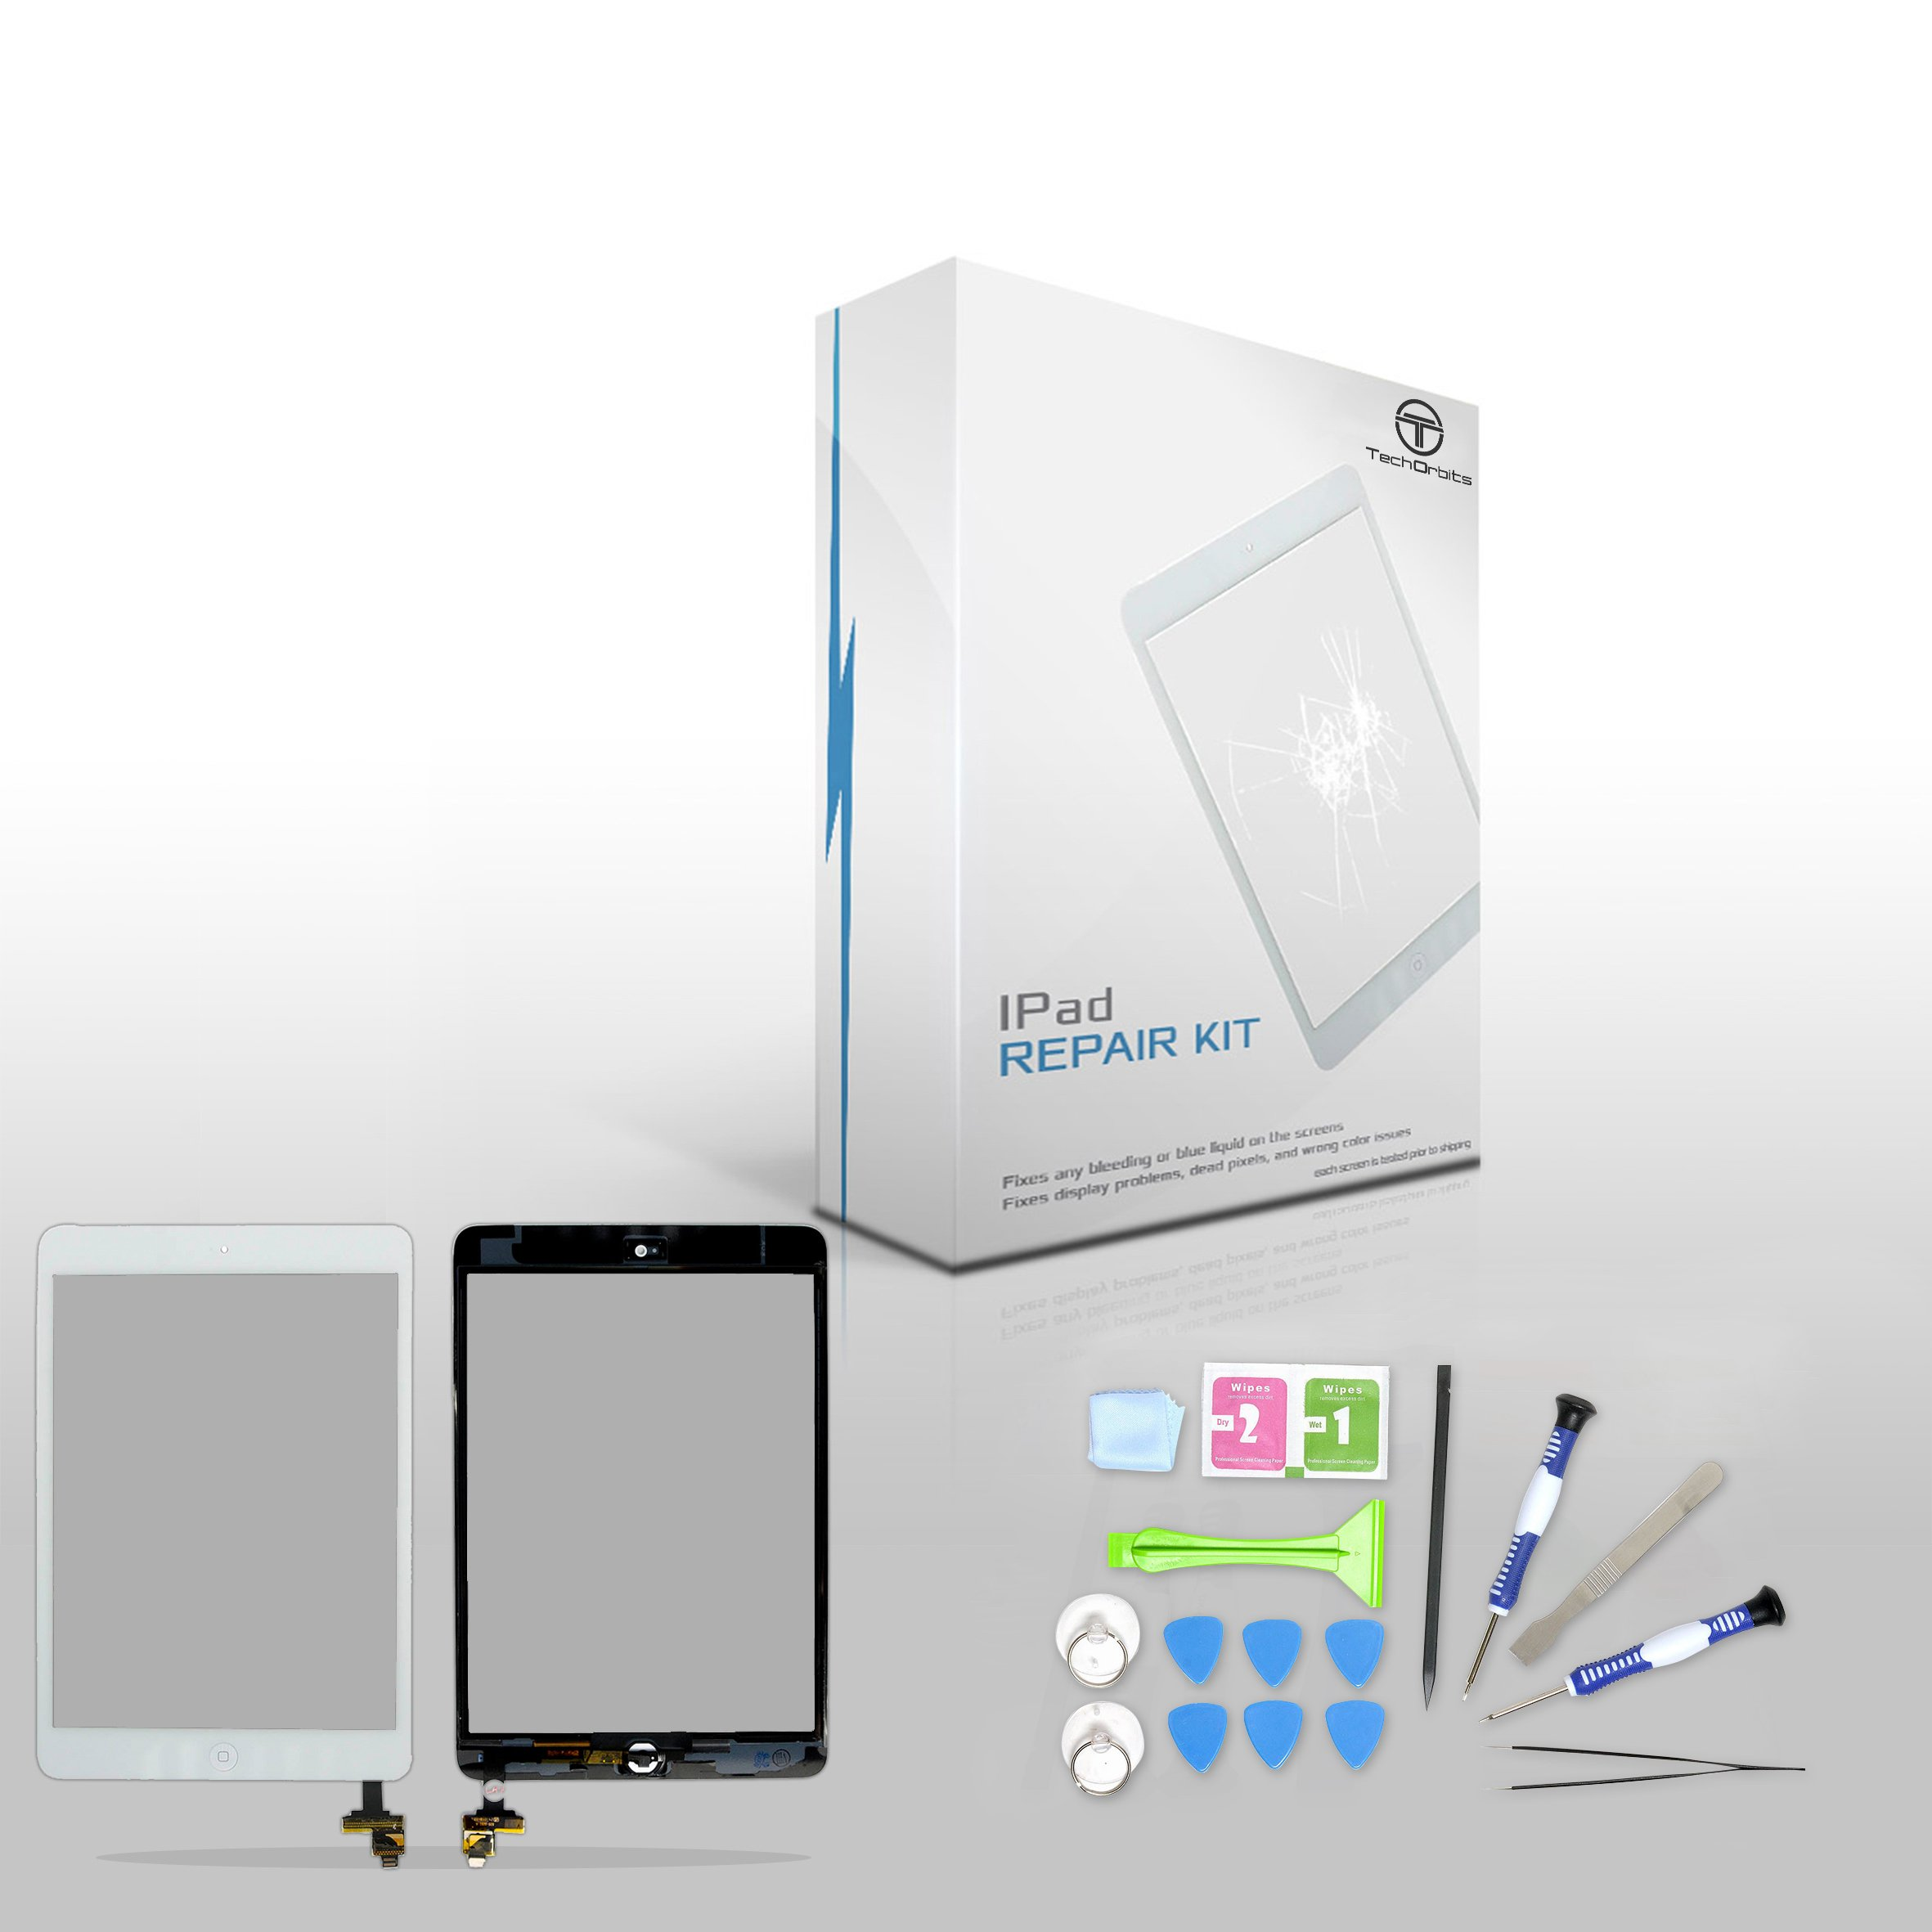 """TechOrbits IPAD Mini Touch Screen Digitizer Replacement 7.9"""" Mini & Mini 2 Retina Display with IC Chip & Home button A1432 A1454 A1455 A1489 A1490 A1491 (AT&T/T-Mobile/Sprint/Verizon) White Repair Kit"""